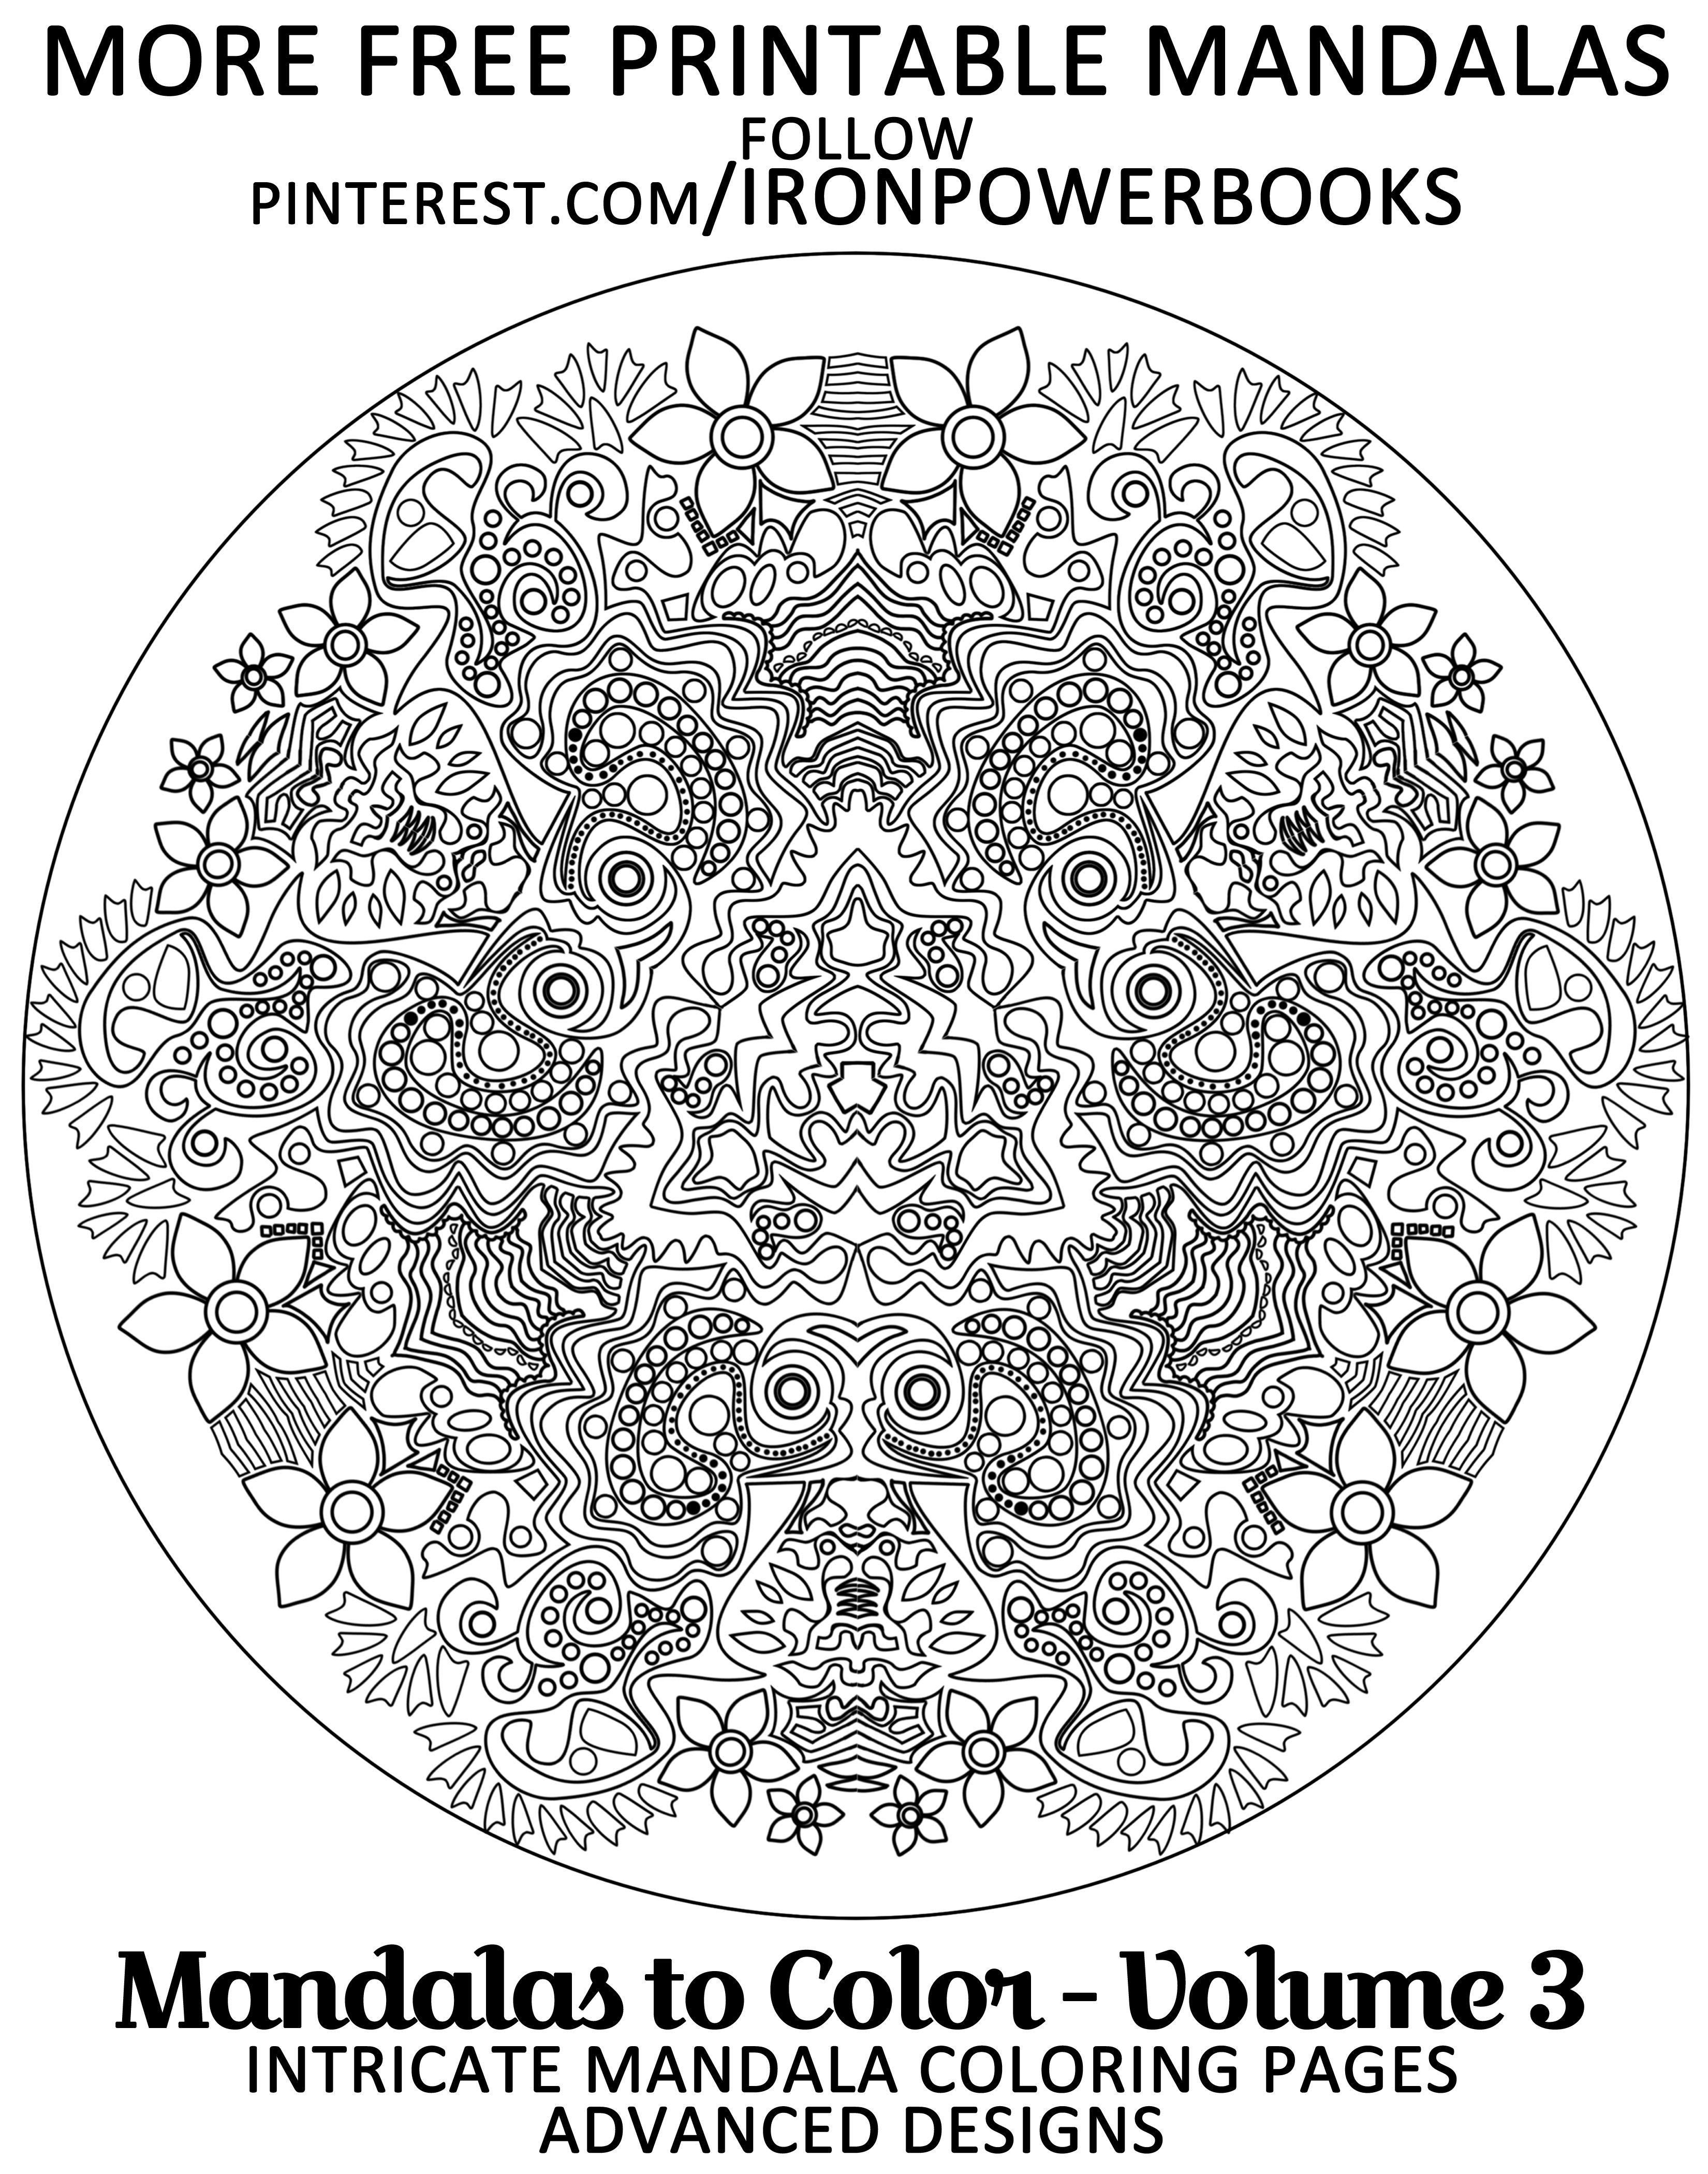 Free Printable Mandala Designs Follow Ironpowerbooks Or Order Your Copy At Http Www Amazon C Mandala Coloring Pages Mandala Coloring Mandala Coloring Books